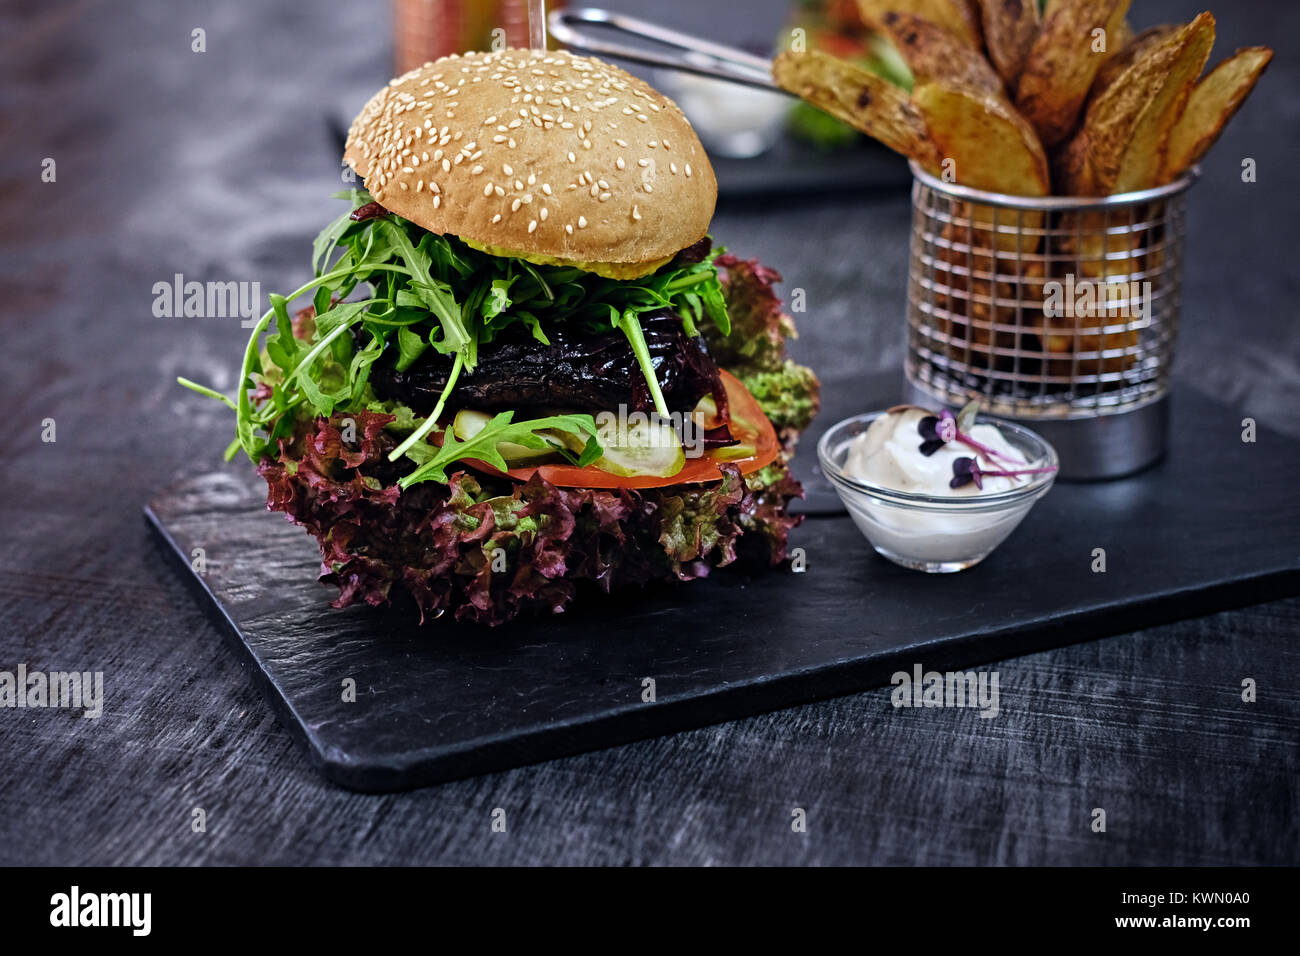 Burger, fries with salad on a table. - Stock Image